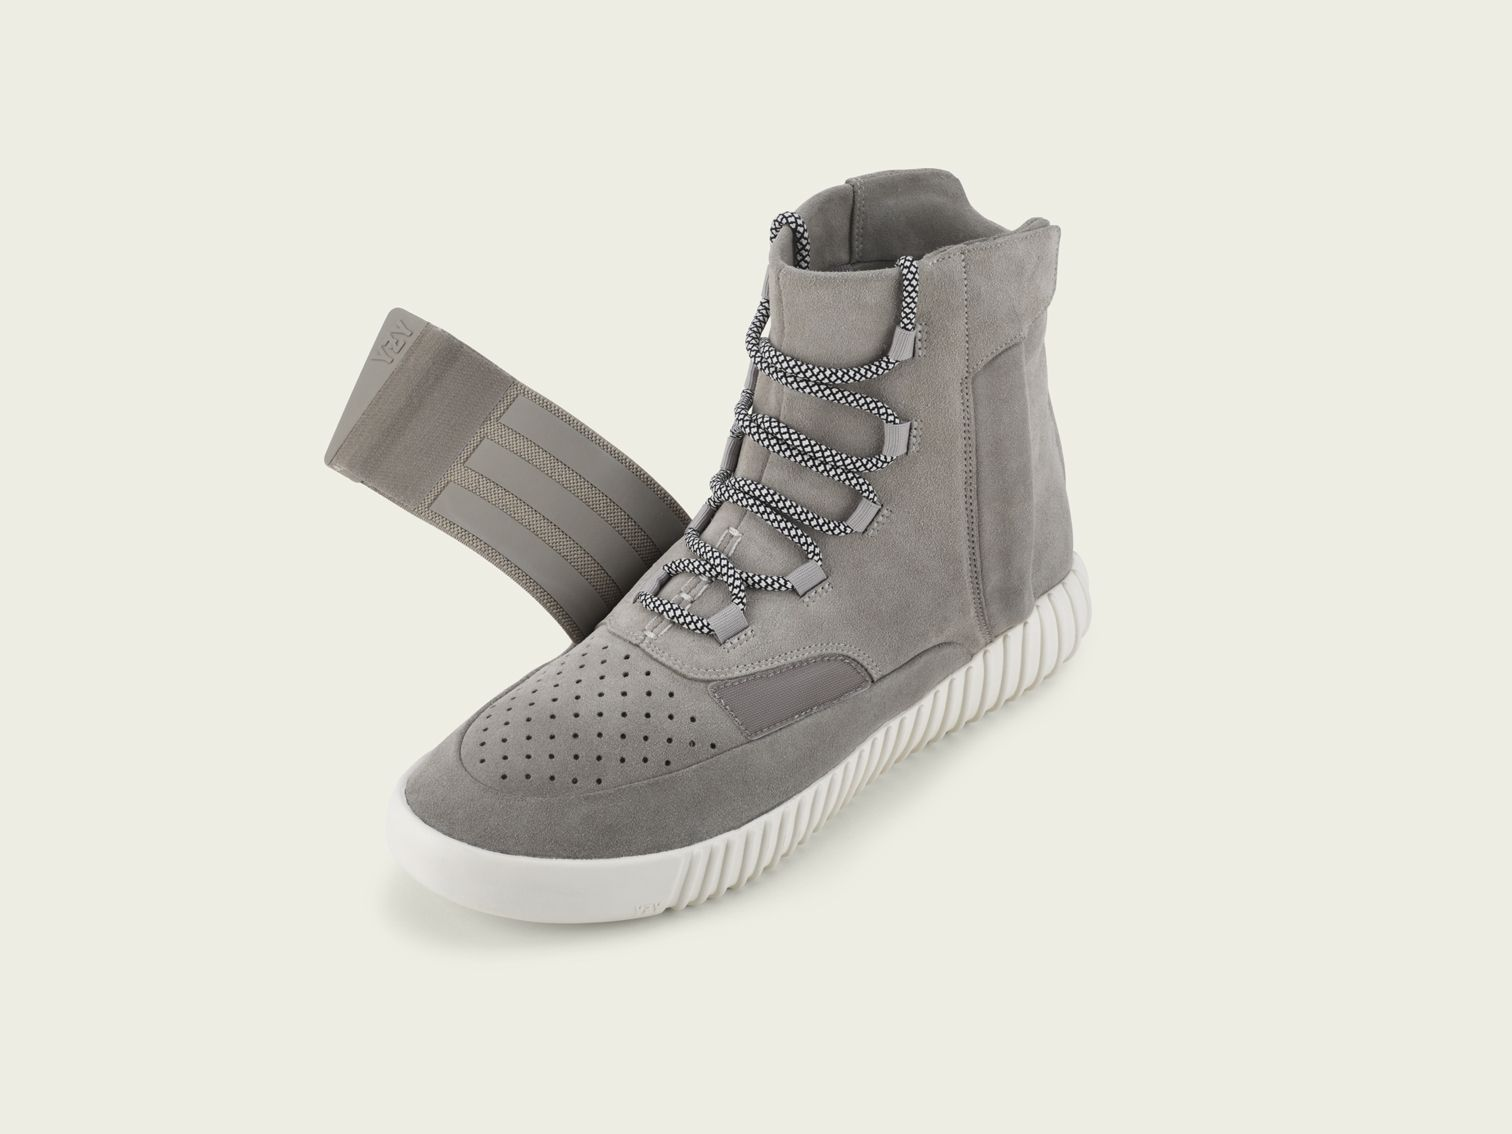 Adidas Yeezy Boost 750 Authentic Adidas Yeezy Boost Shoes come with original  box, extra laces and 2 dust bags & Receipt.